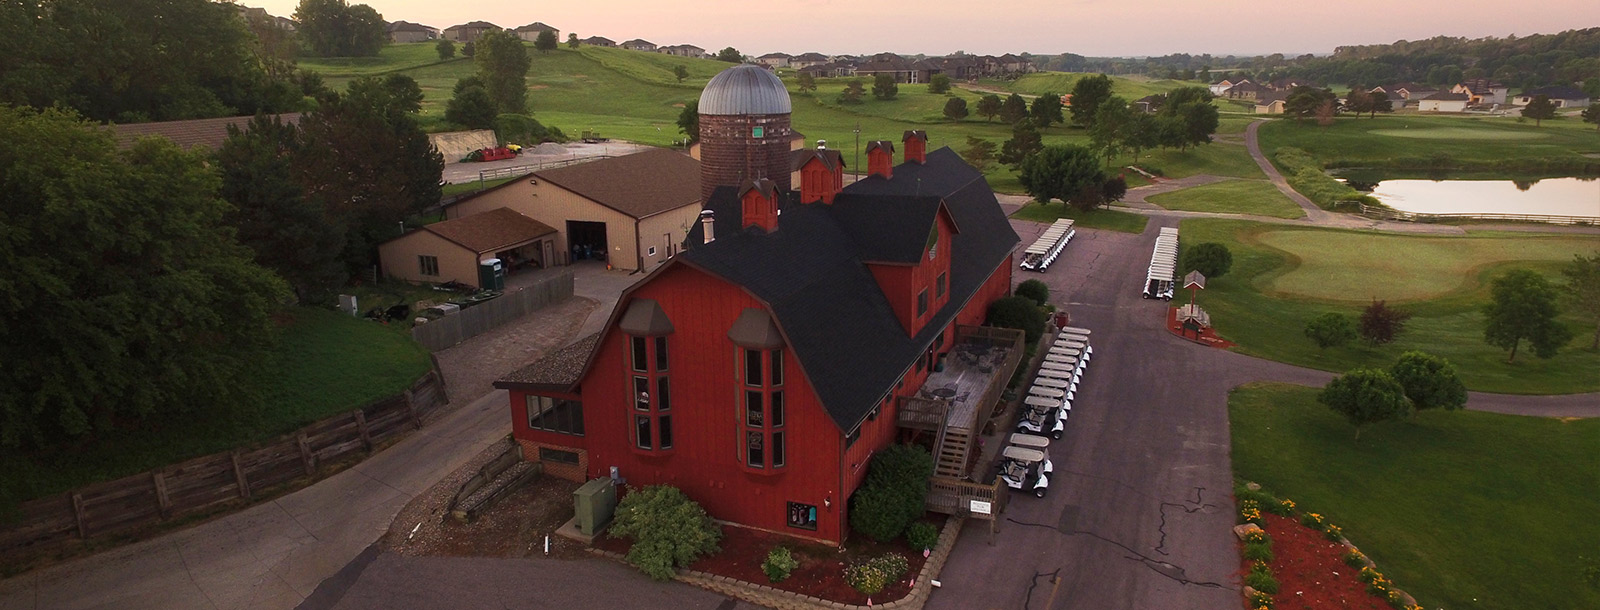 whispering creek golf packages sioux city hotel